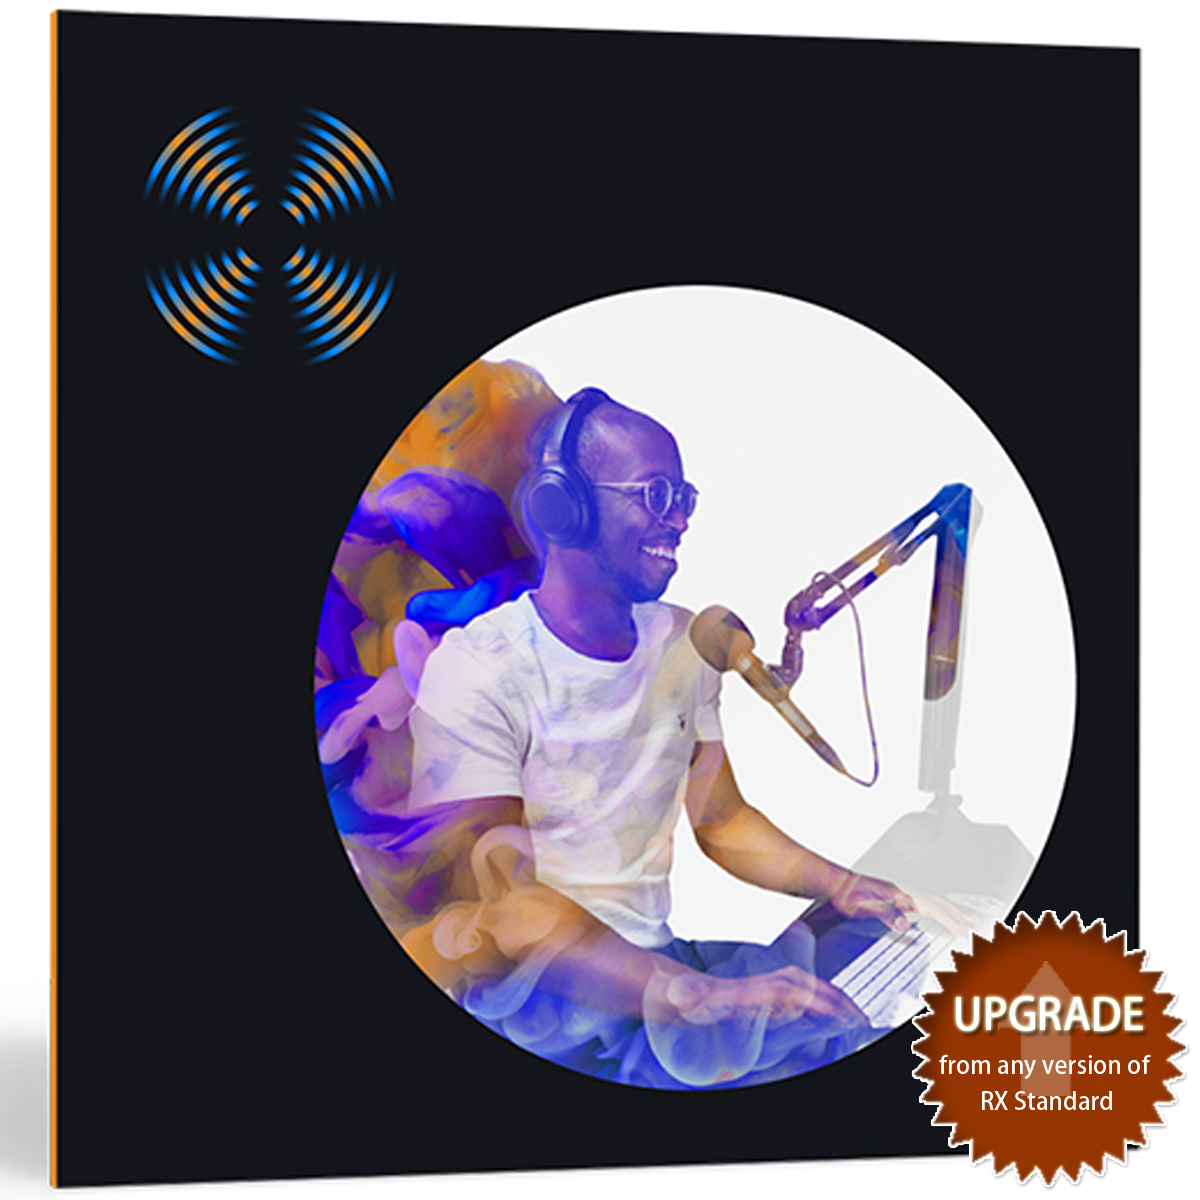 iZotope アイゾトープ / RX8 Advanced upgrade from any version of RX Standard【お取り寄せ商品】